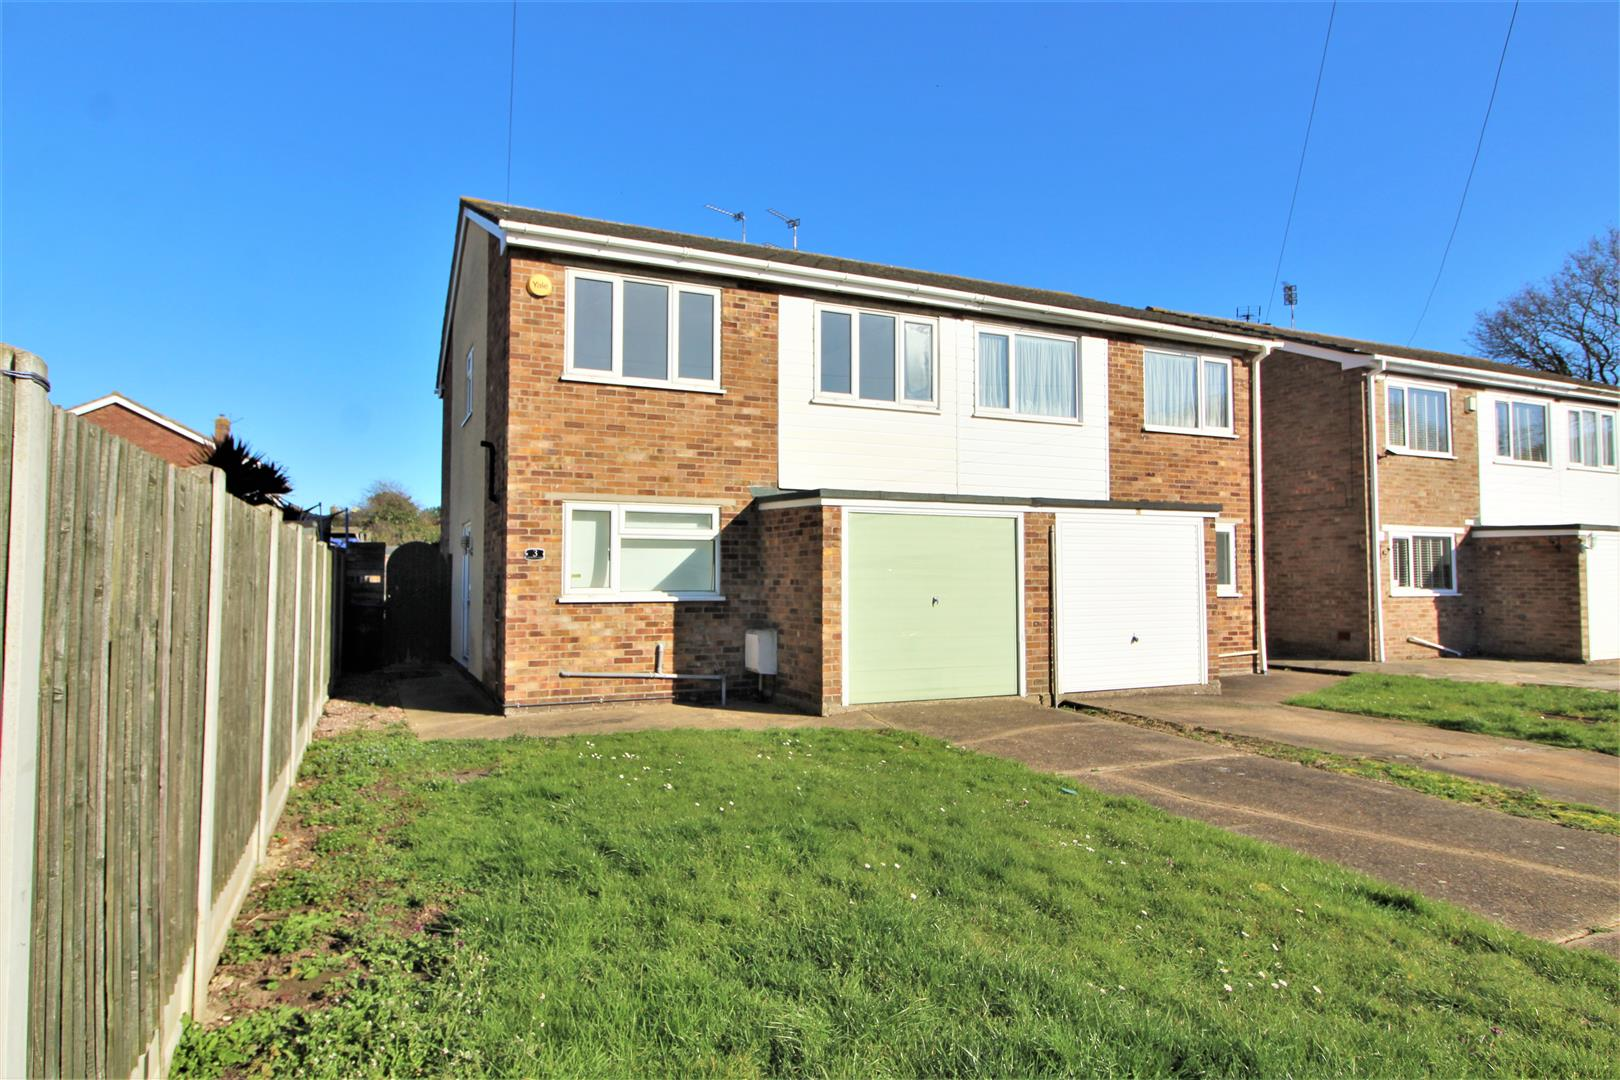 Burmanny Close, Clacton-On-Sea, Essex, CO15 2BA